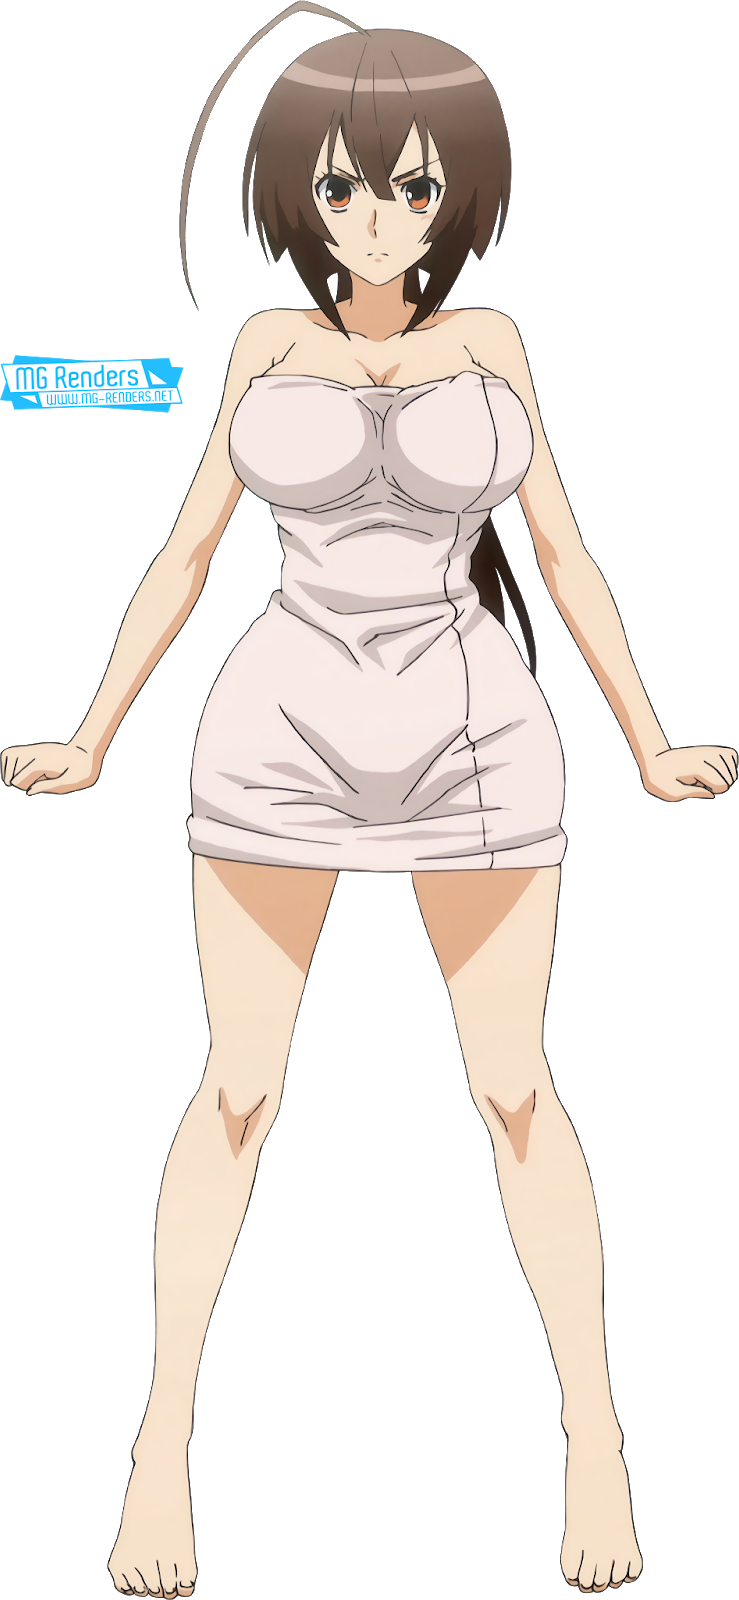 Tags: Anime, Render,  Bare legs,  Feet,  Full body,  Huge Breasts,  Musubi,  Sekirei,  Towel, PNG, Image, Picture